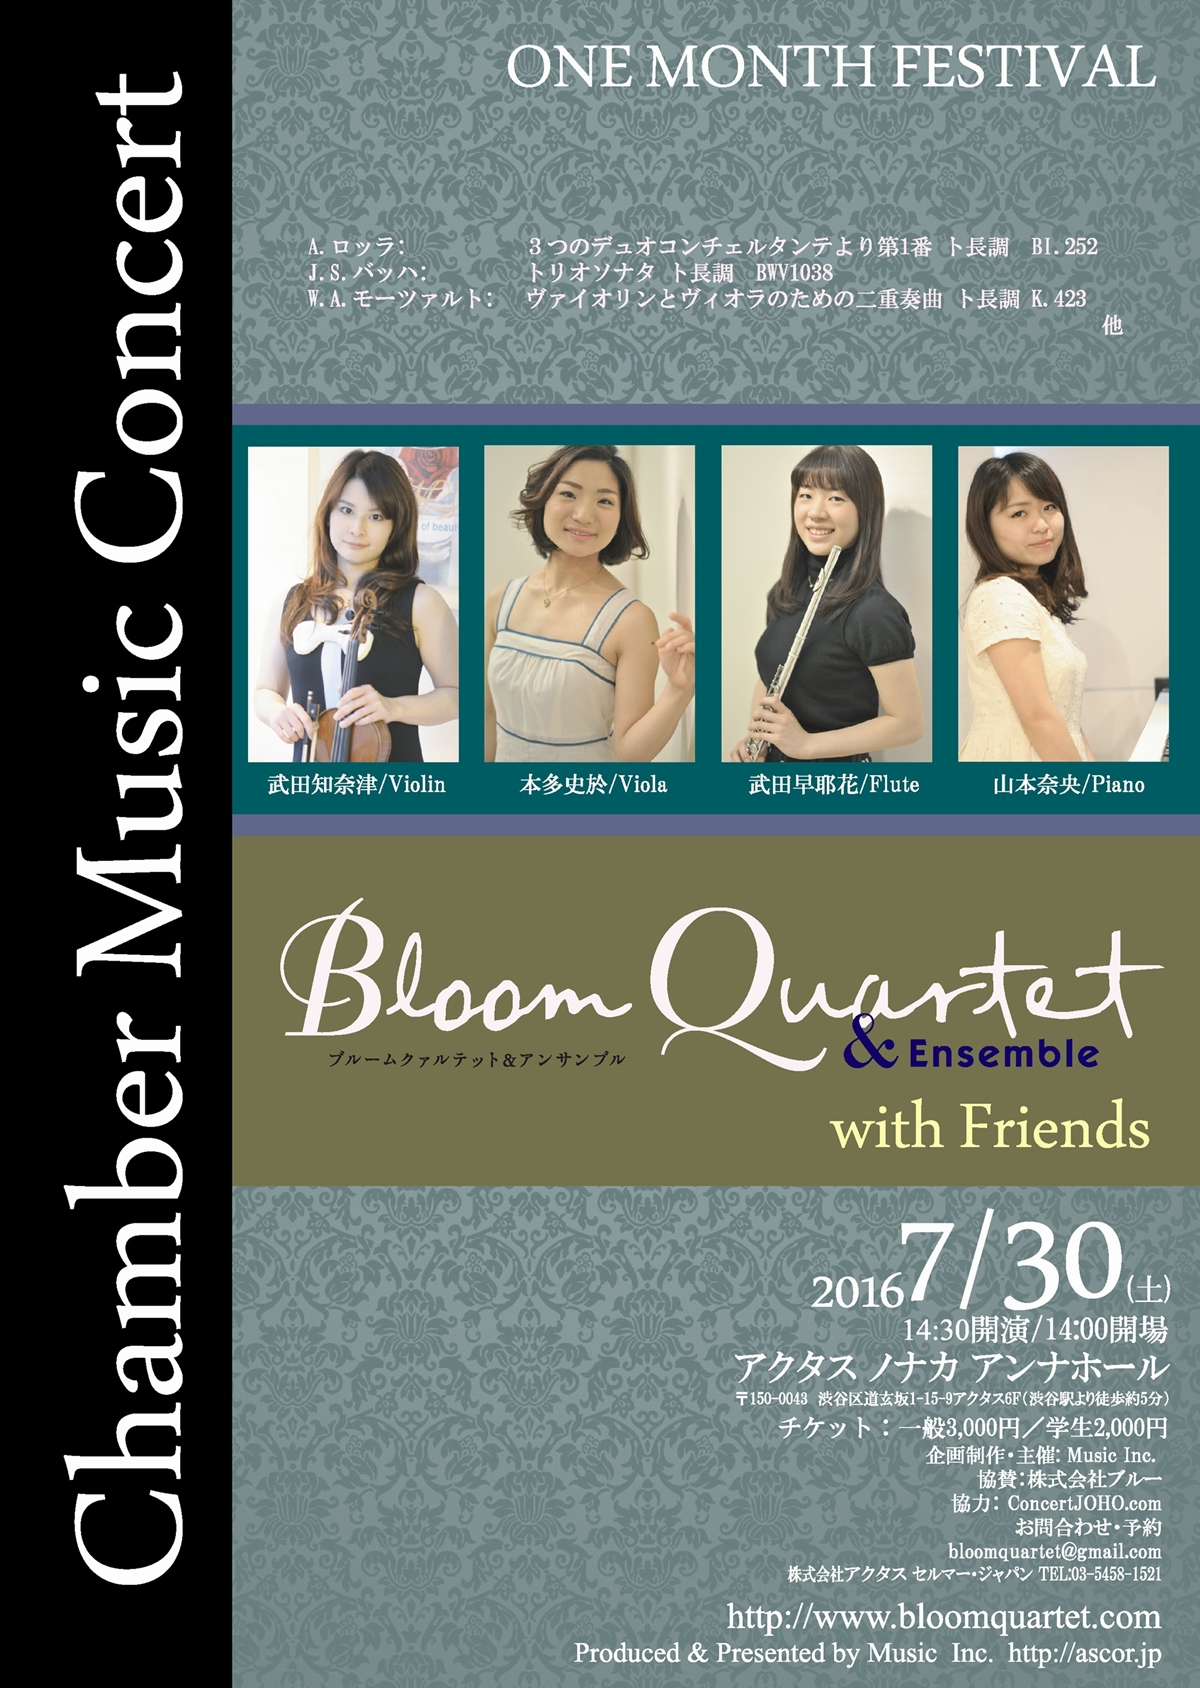 Bloom Quartet & Ensemble